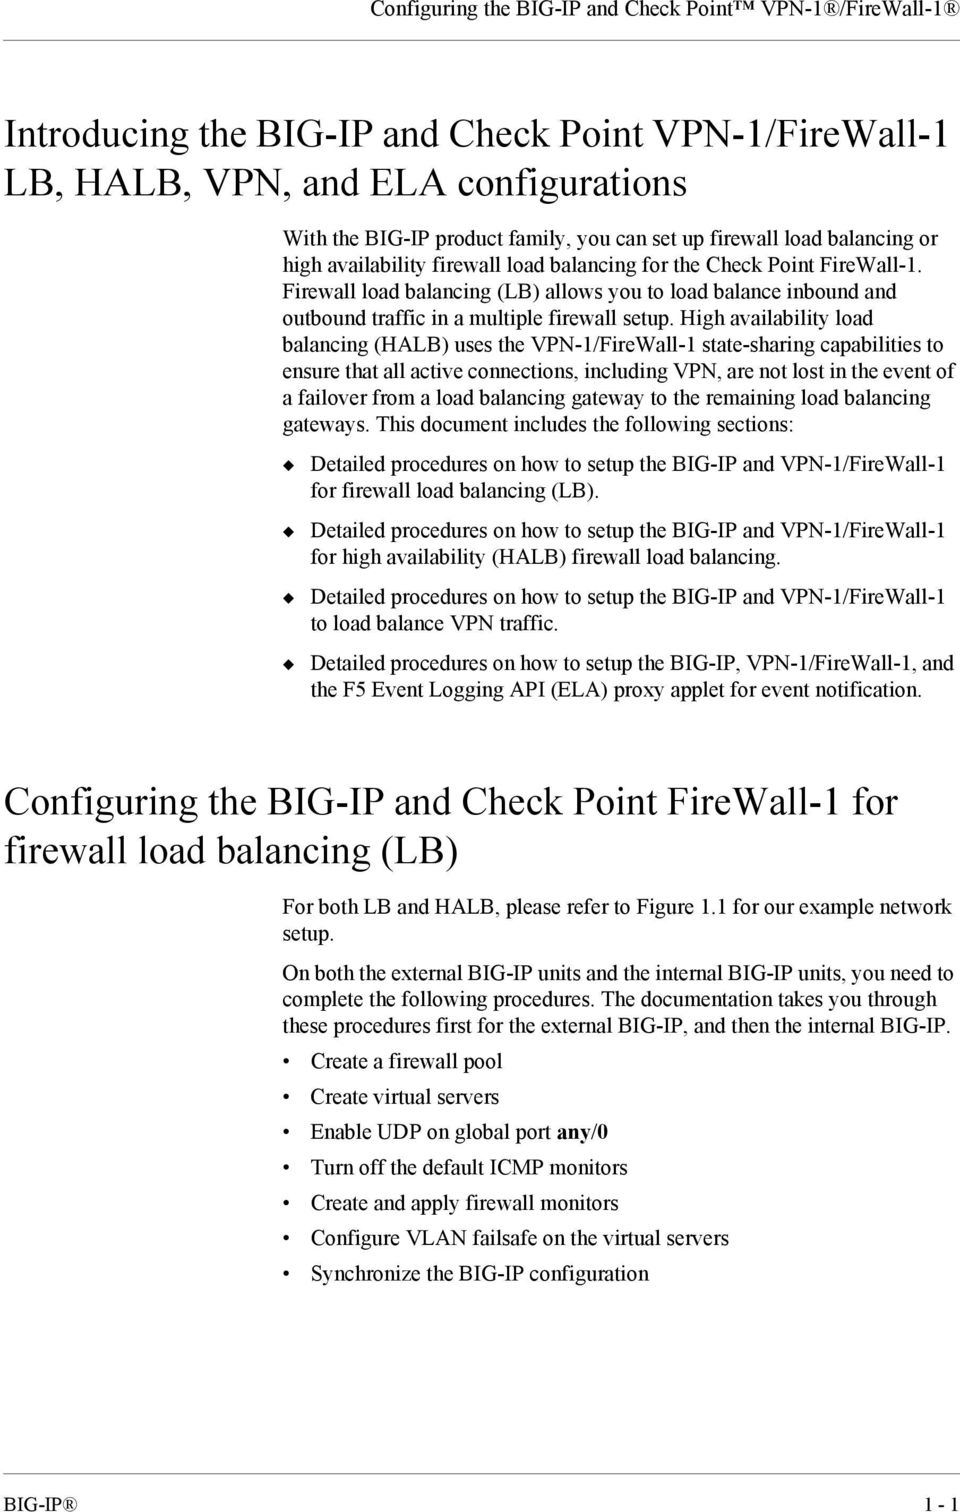 Firewall load balancing (LB) allows you to load balance inbound and outbound traffic in a multiple firewall setup.